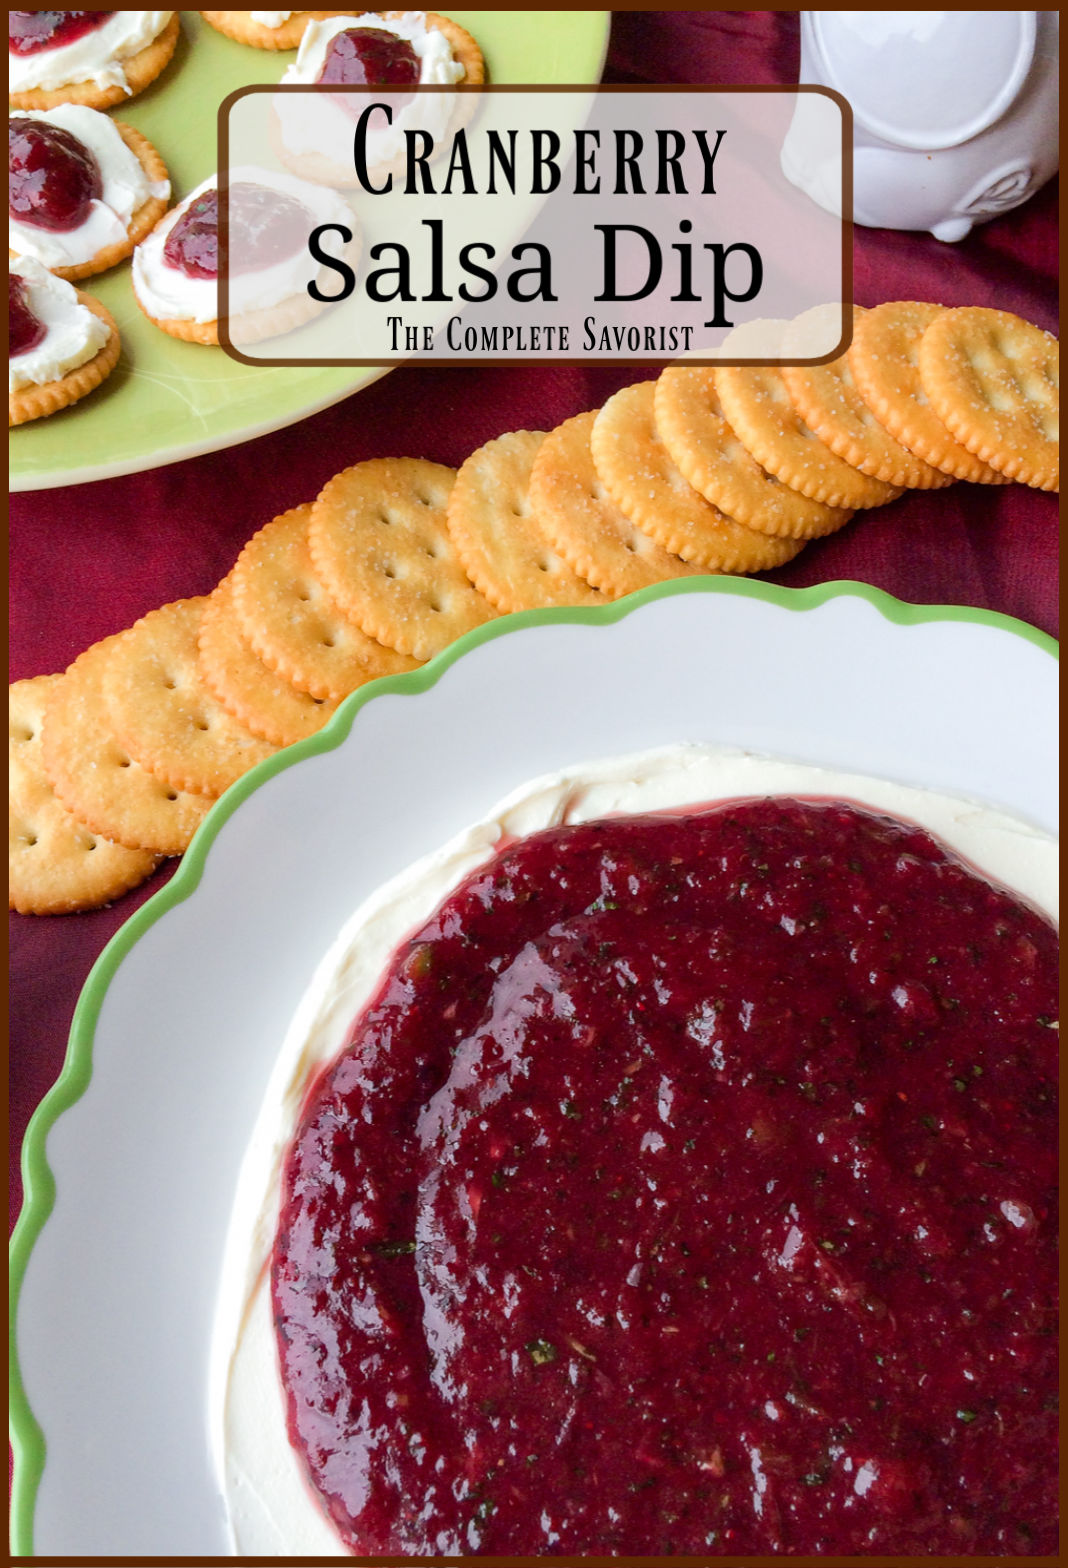 Cranberry salsa over a plate of softened smoothed cream cheese, with butter crackers.